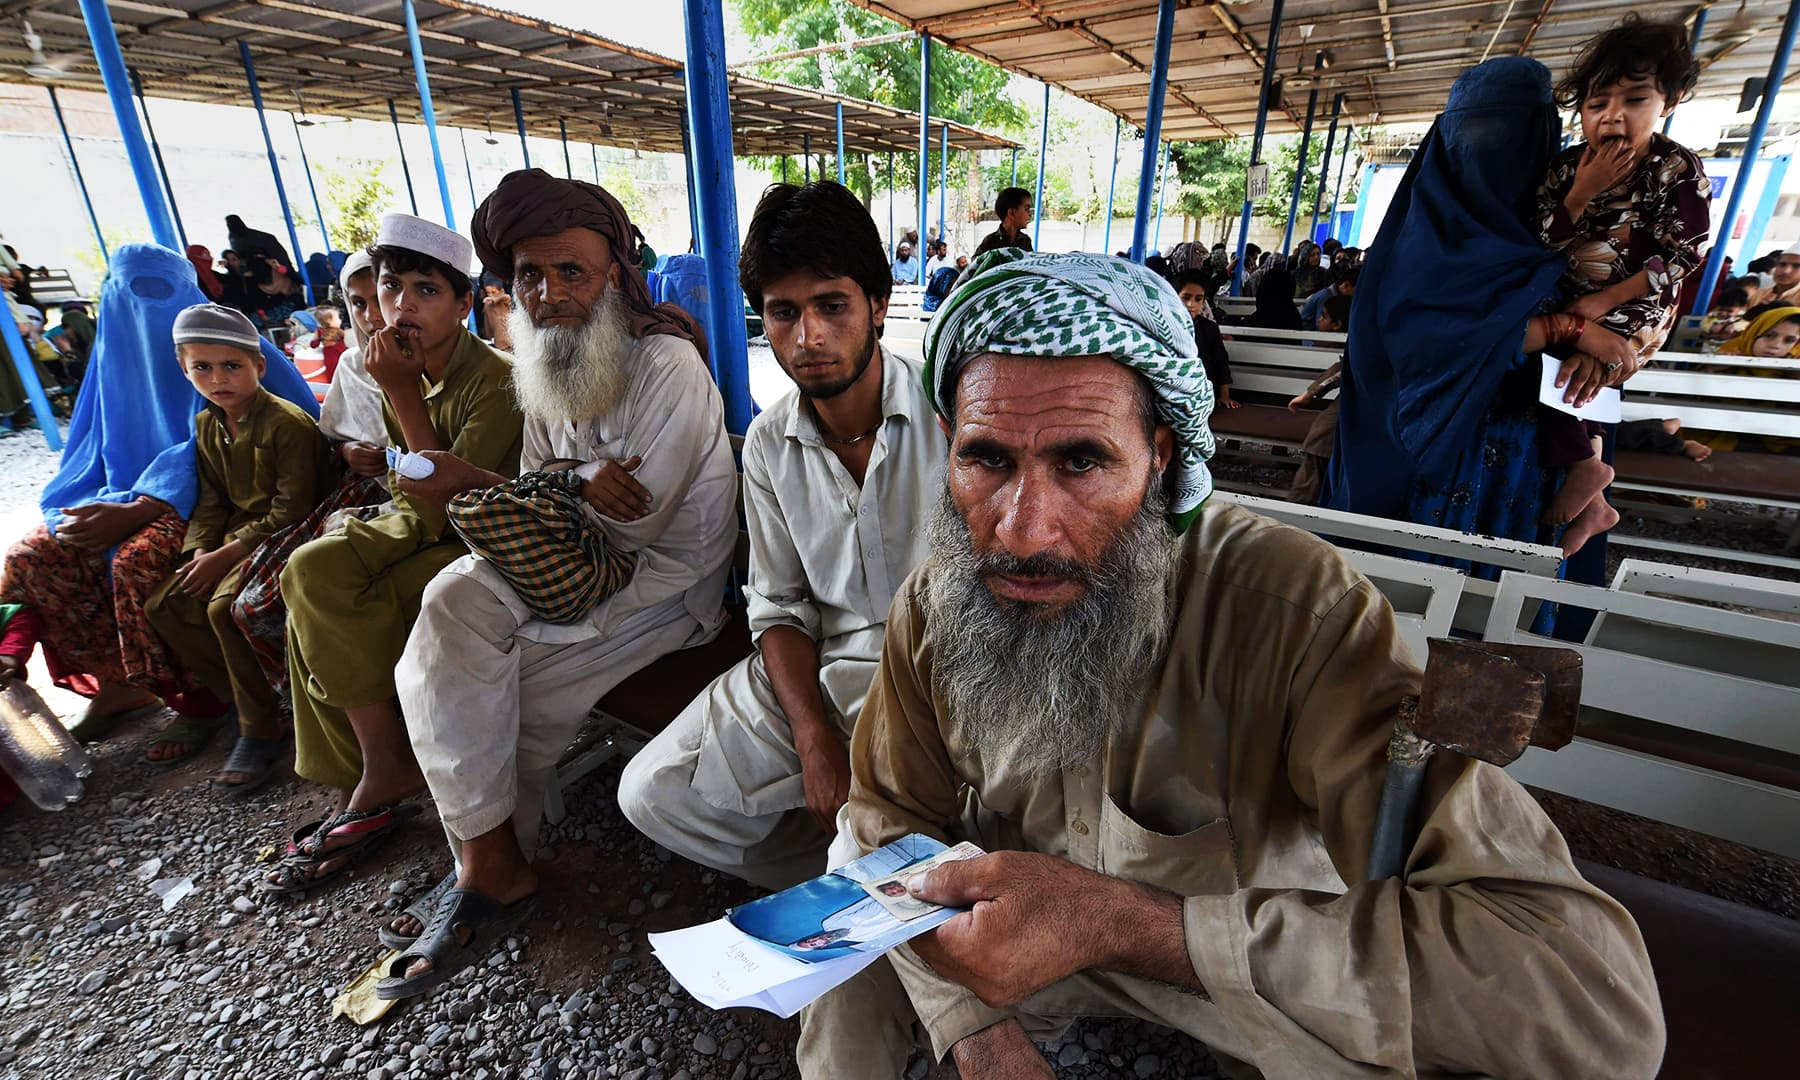 Afghan refugees wait to register at the UNHCR repatriation centre on the outskirts of Peshawar. — AFP